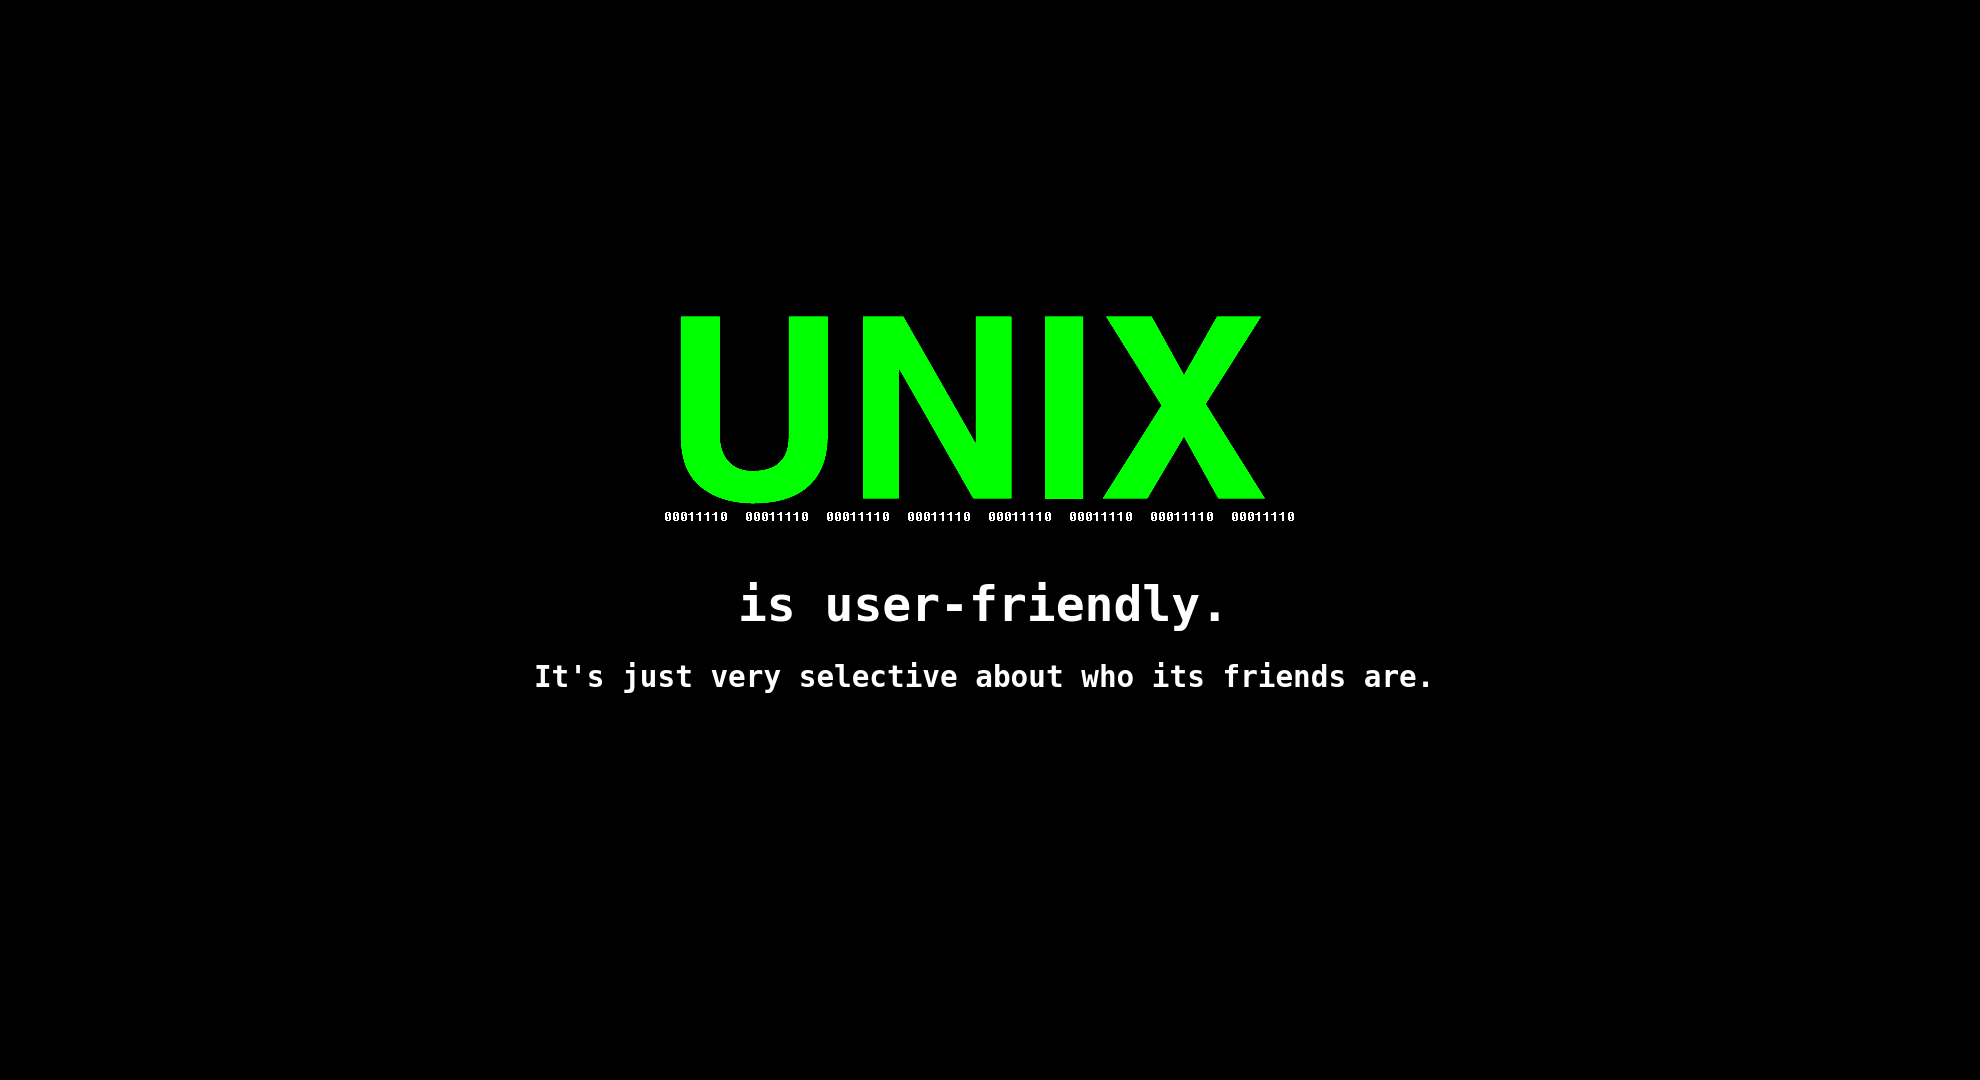 Unix Computer Wallpapers, Desktop Backgrounds | 1980x1080 | ID:428980